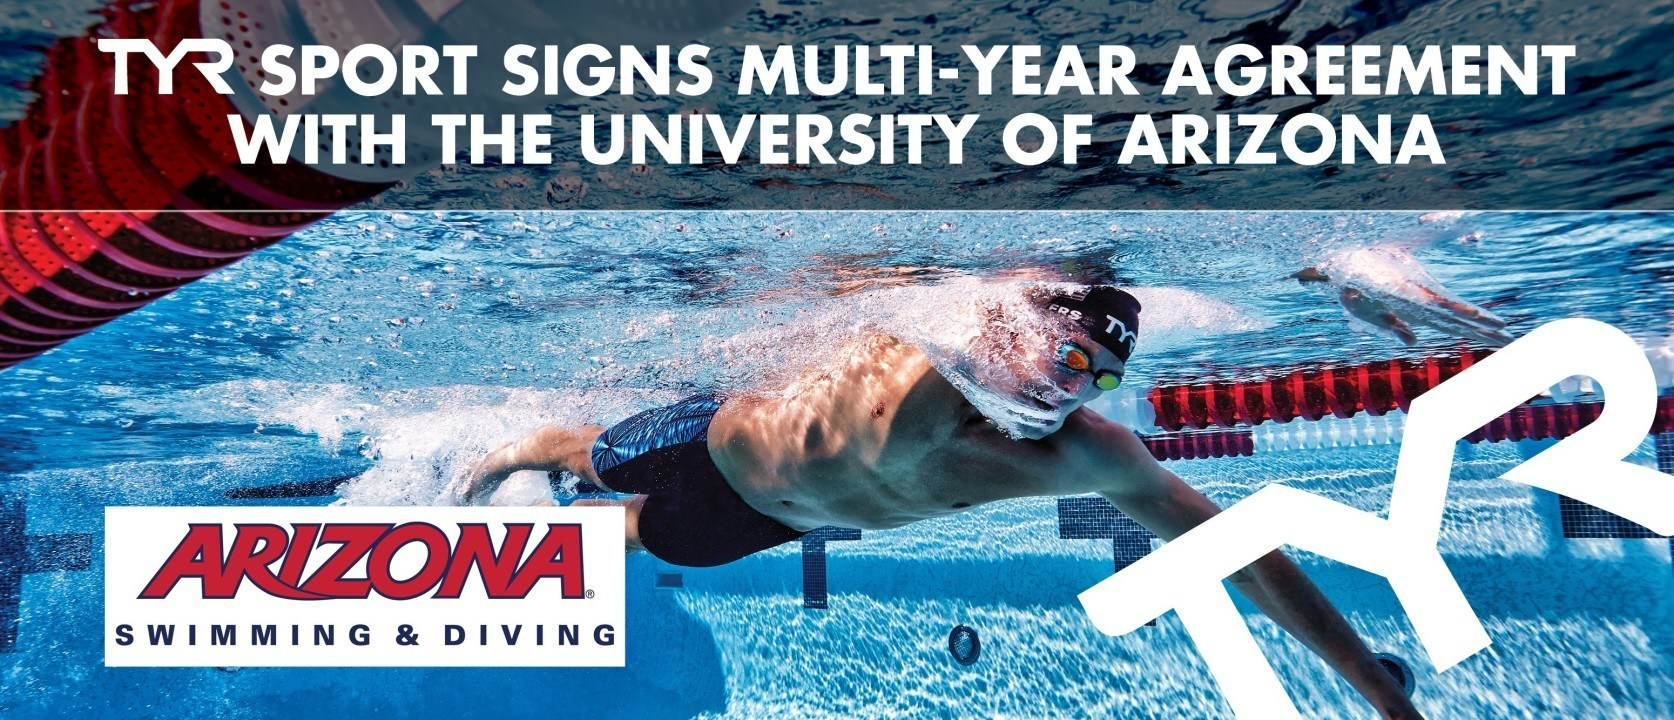 TYR Sports signs multi-year agreement with the University of Arizona Swimming